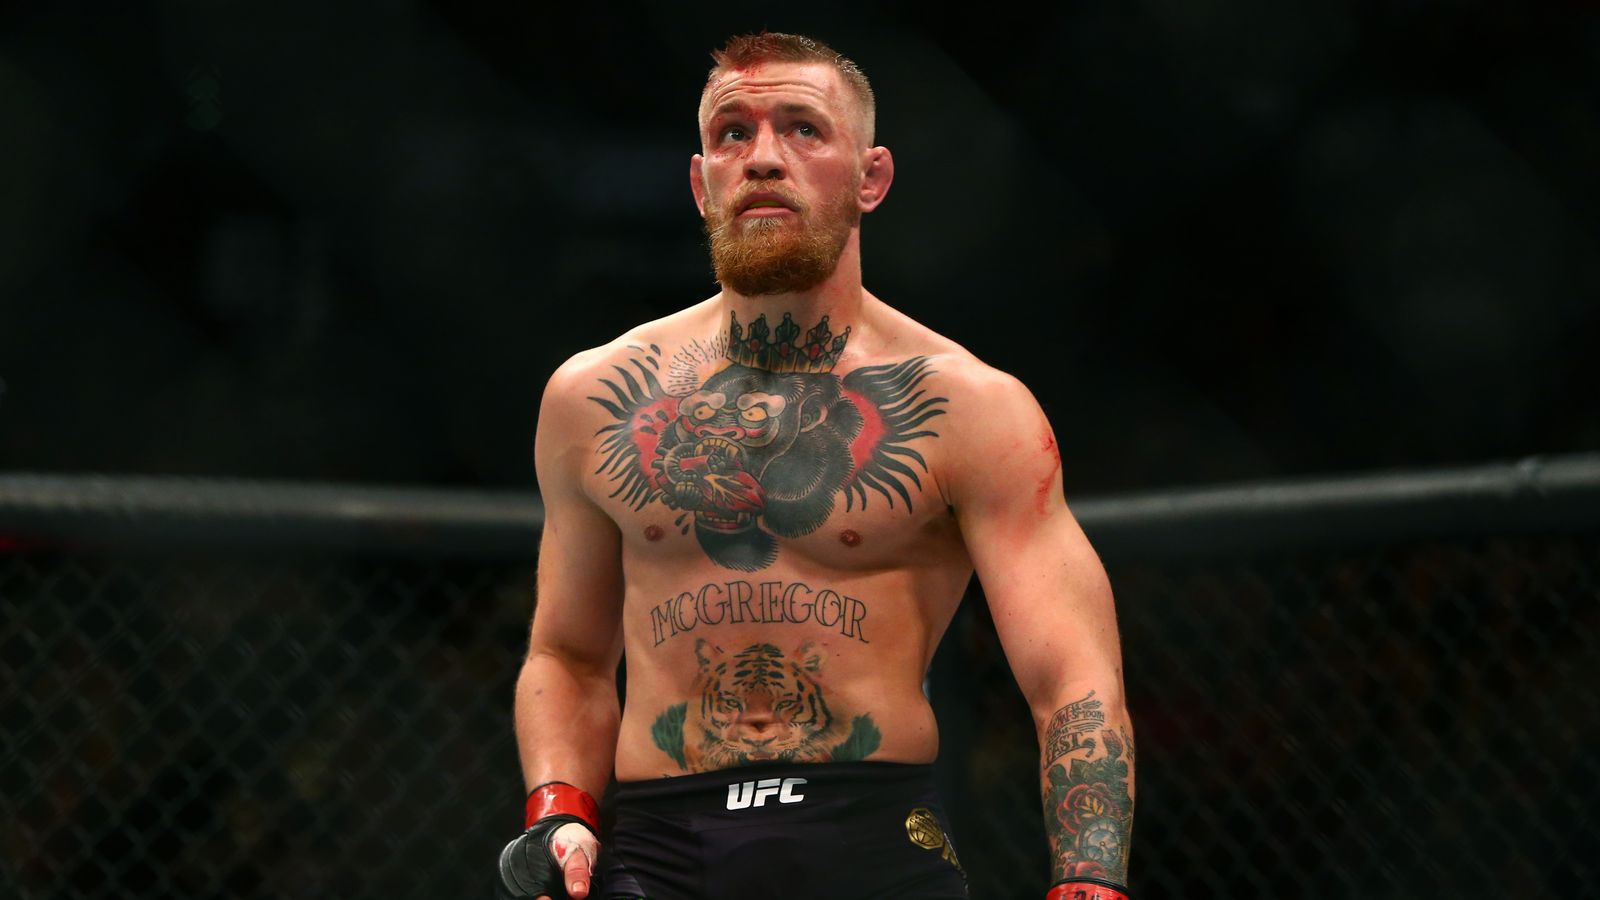 Conor McGregor ready to fight again calls out UFC After losing to Floyd Mayweather in the boxing ring UFC champ anxious to get back in the octagon